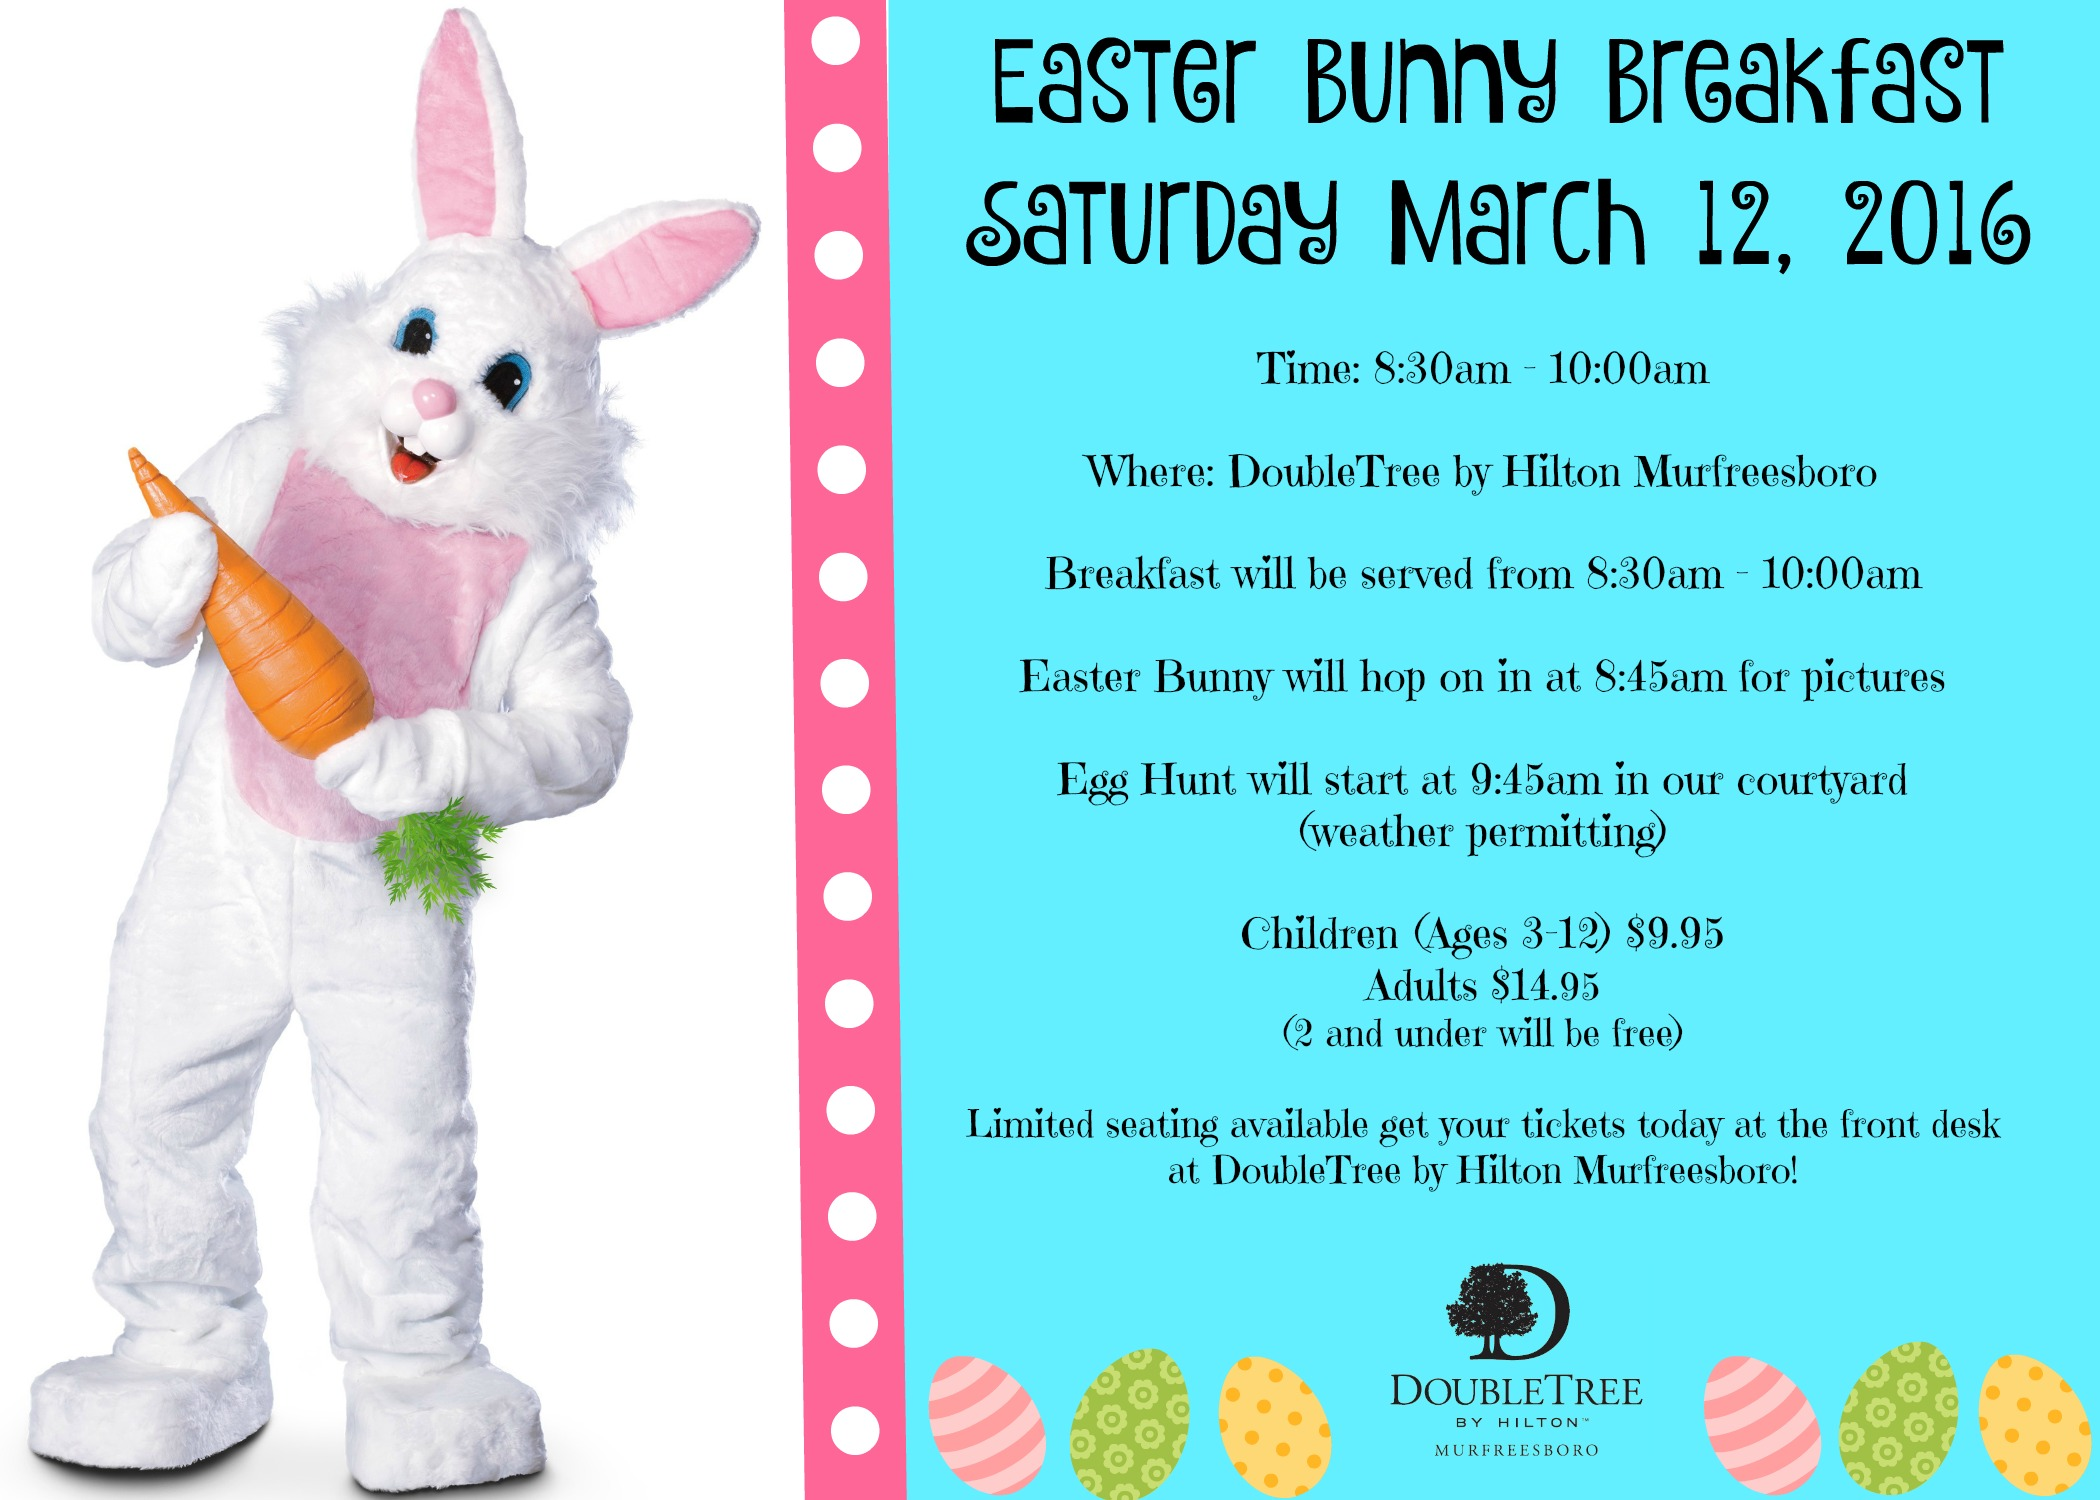 Easter Bunny Breakfast in Murfreesboro